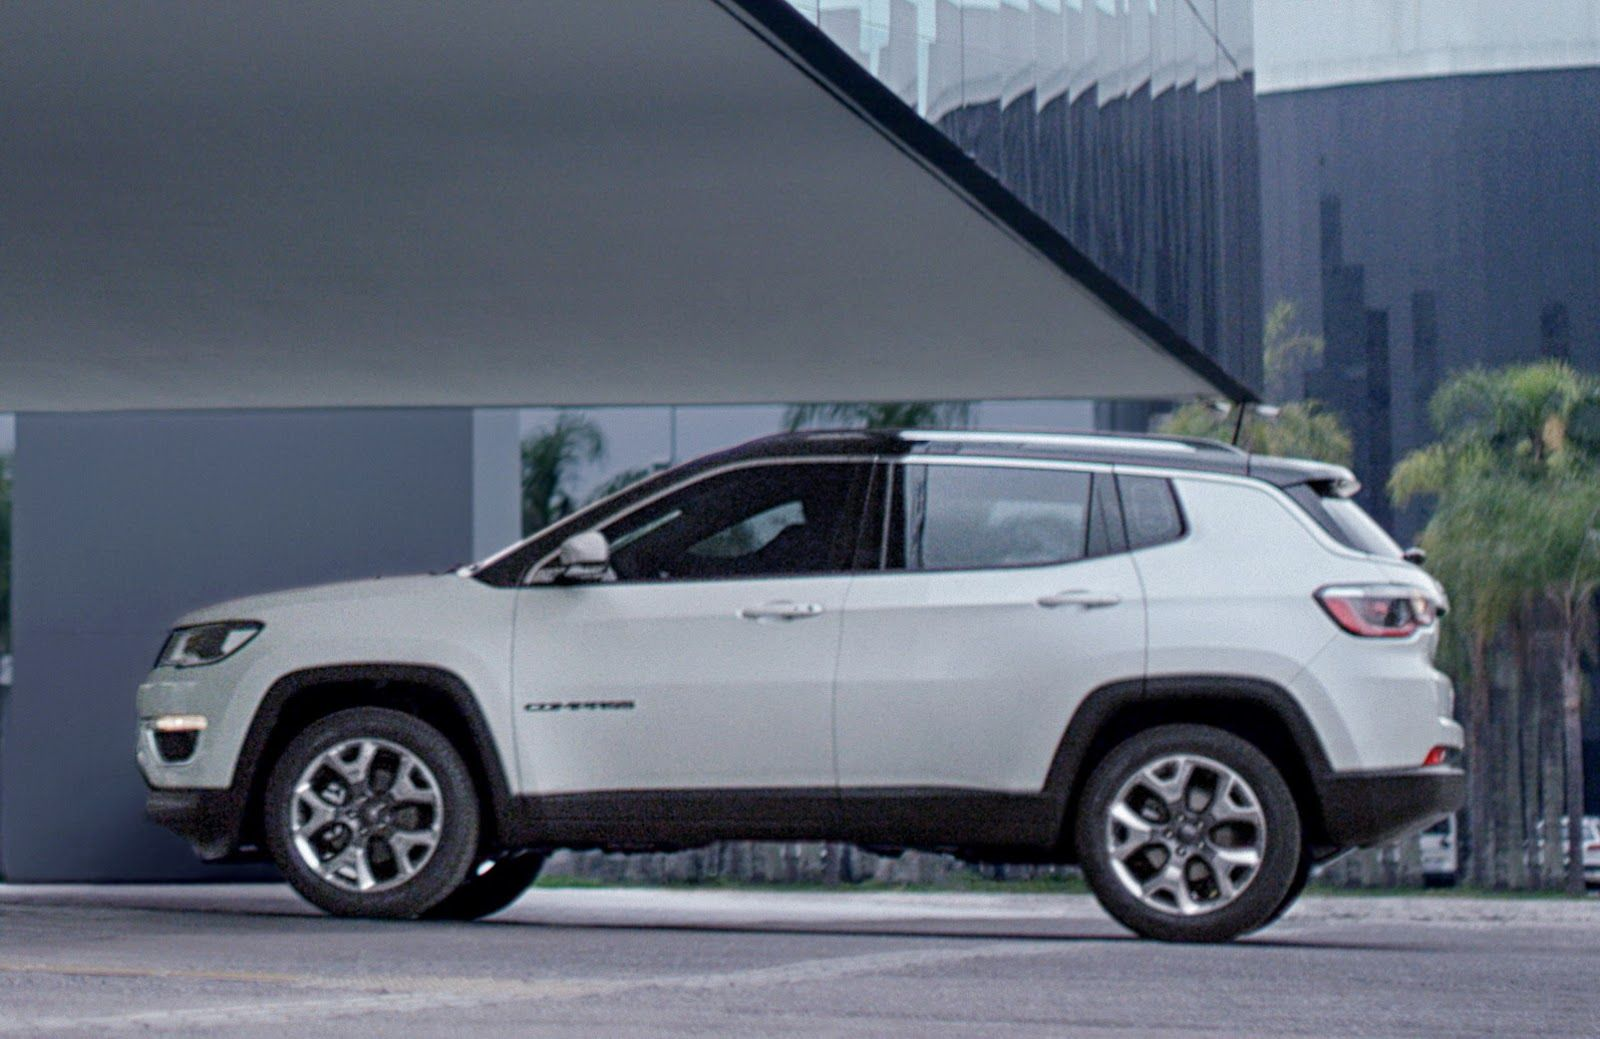 2017 Jeep Compass Revealed, Looks Like A Smaller Grand